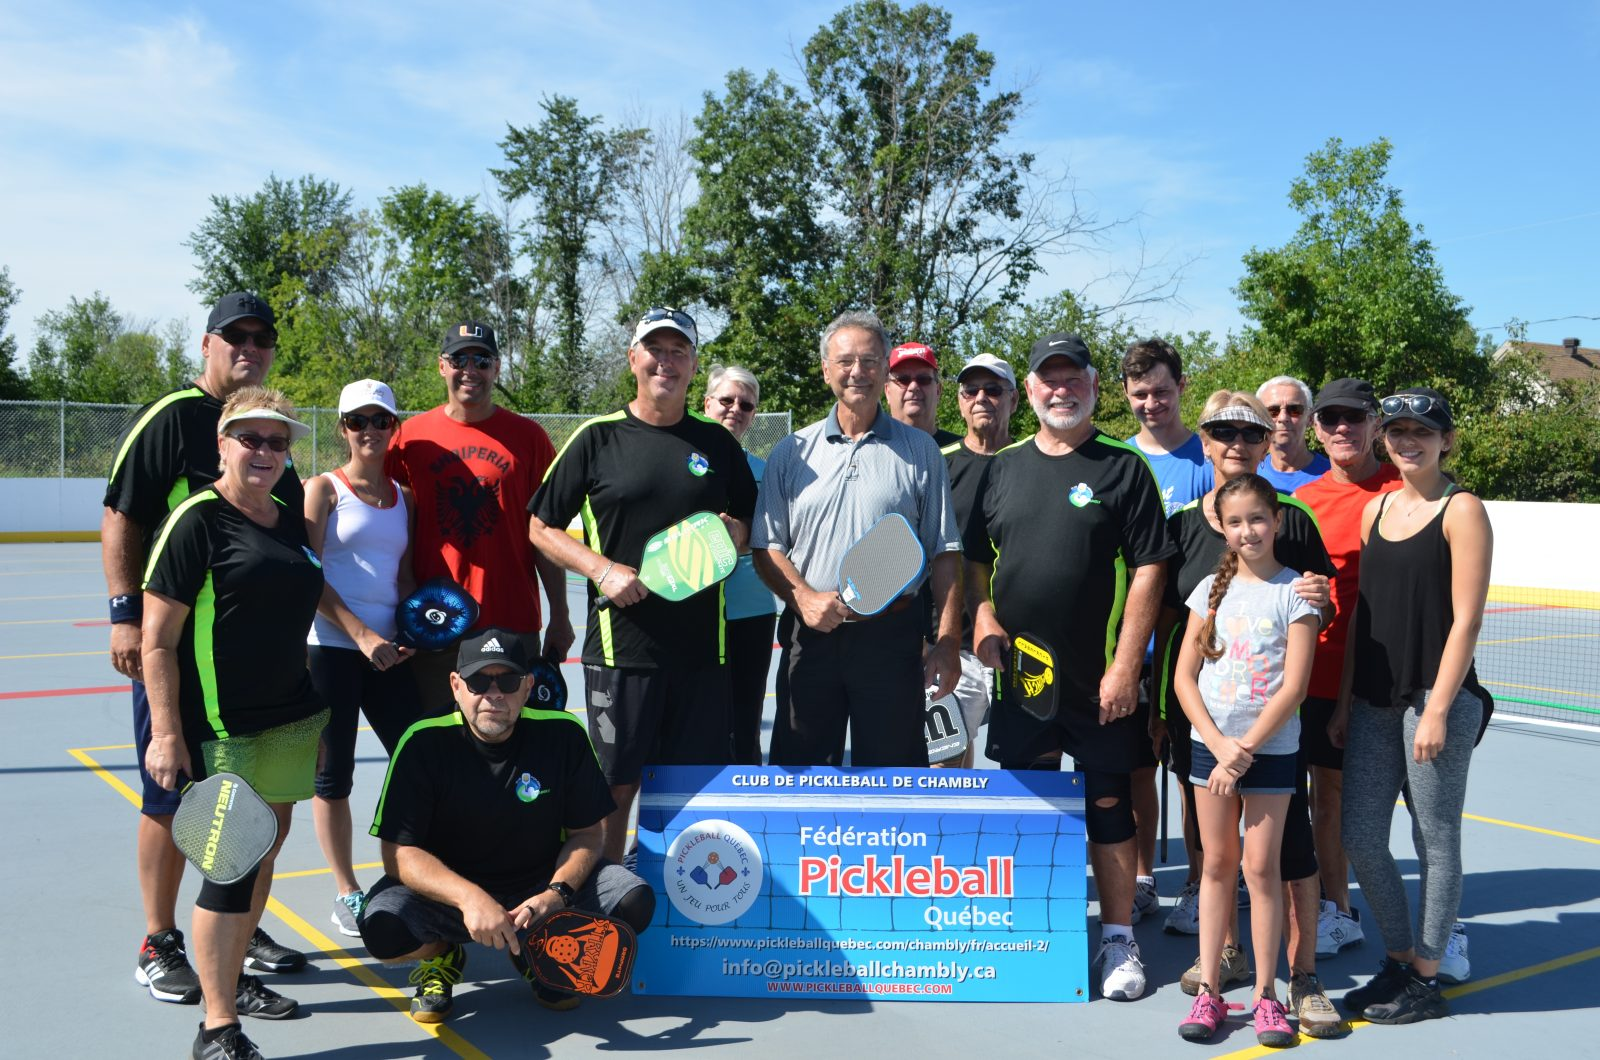 Le pickleball gagne du terrain